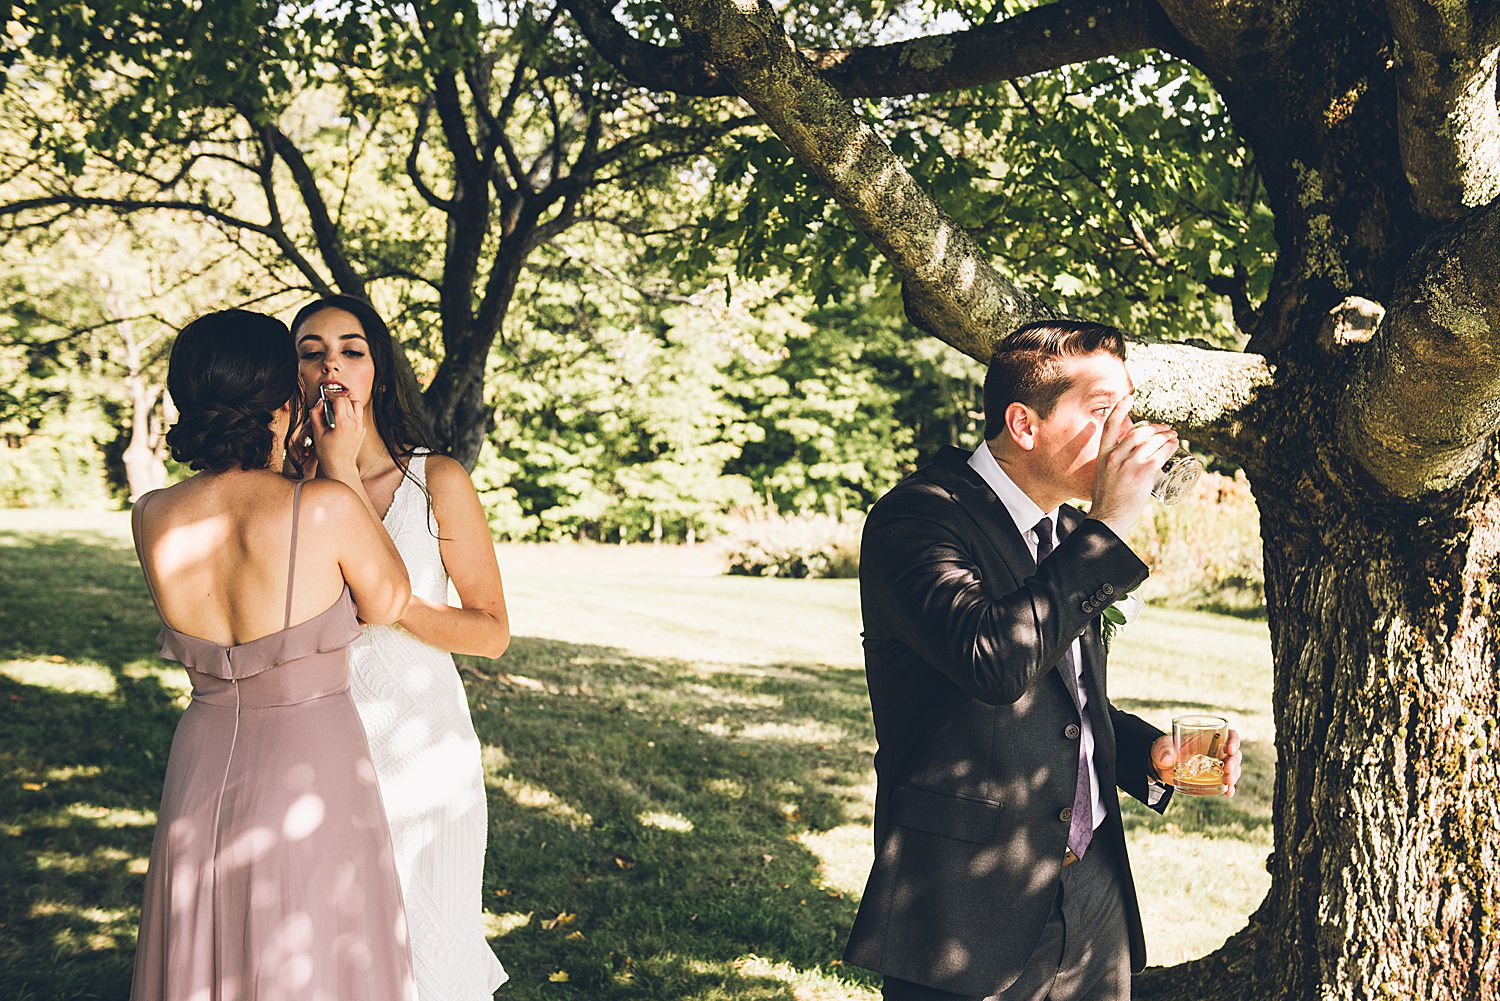 bride getting lipstick on while groom sips her drink